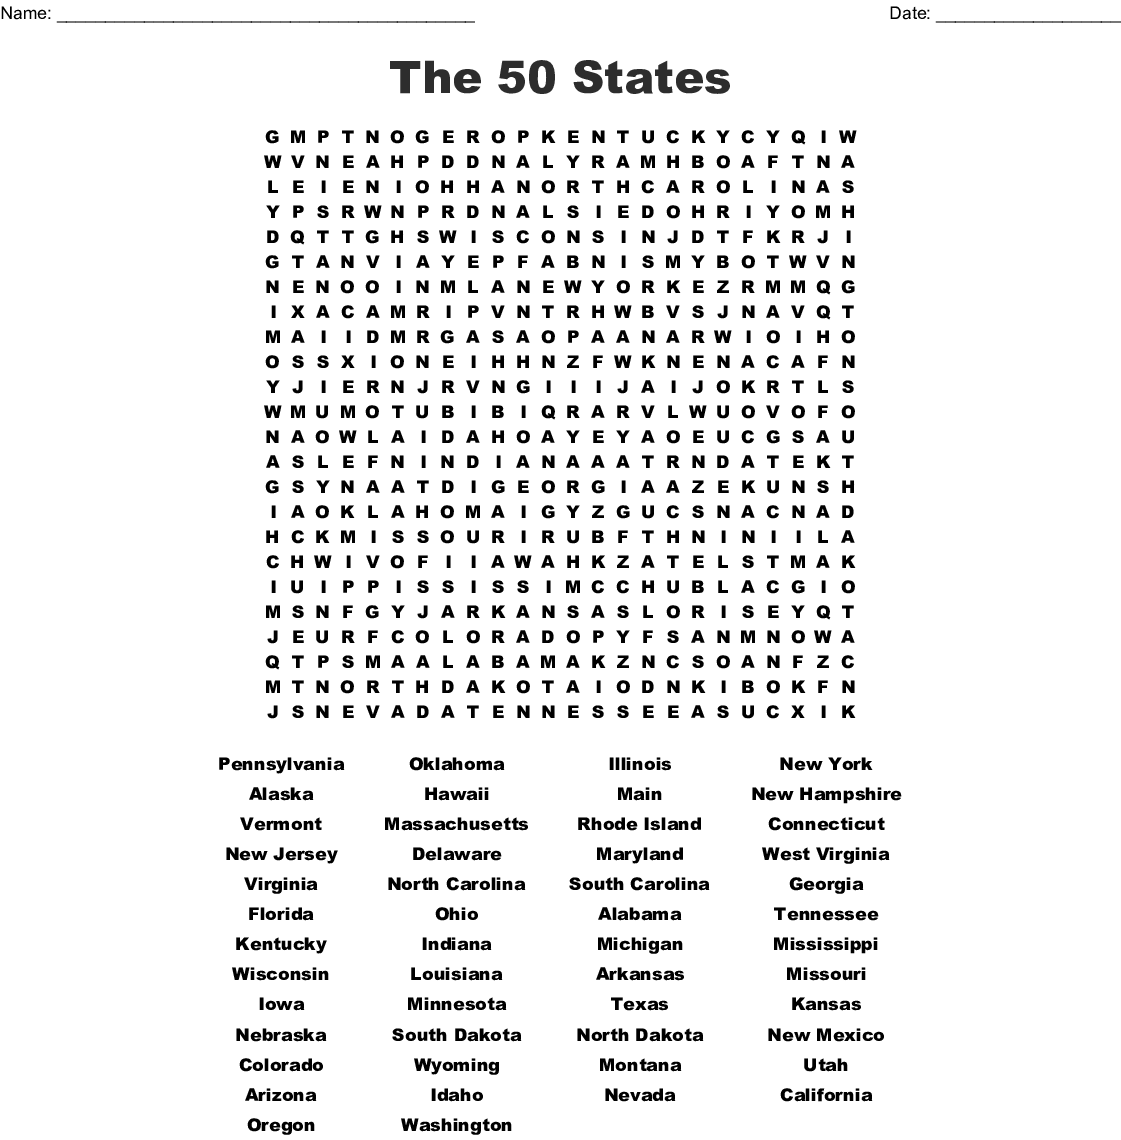 The 50 States Word Search